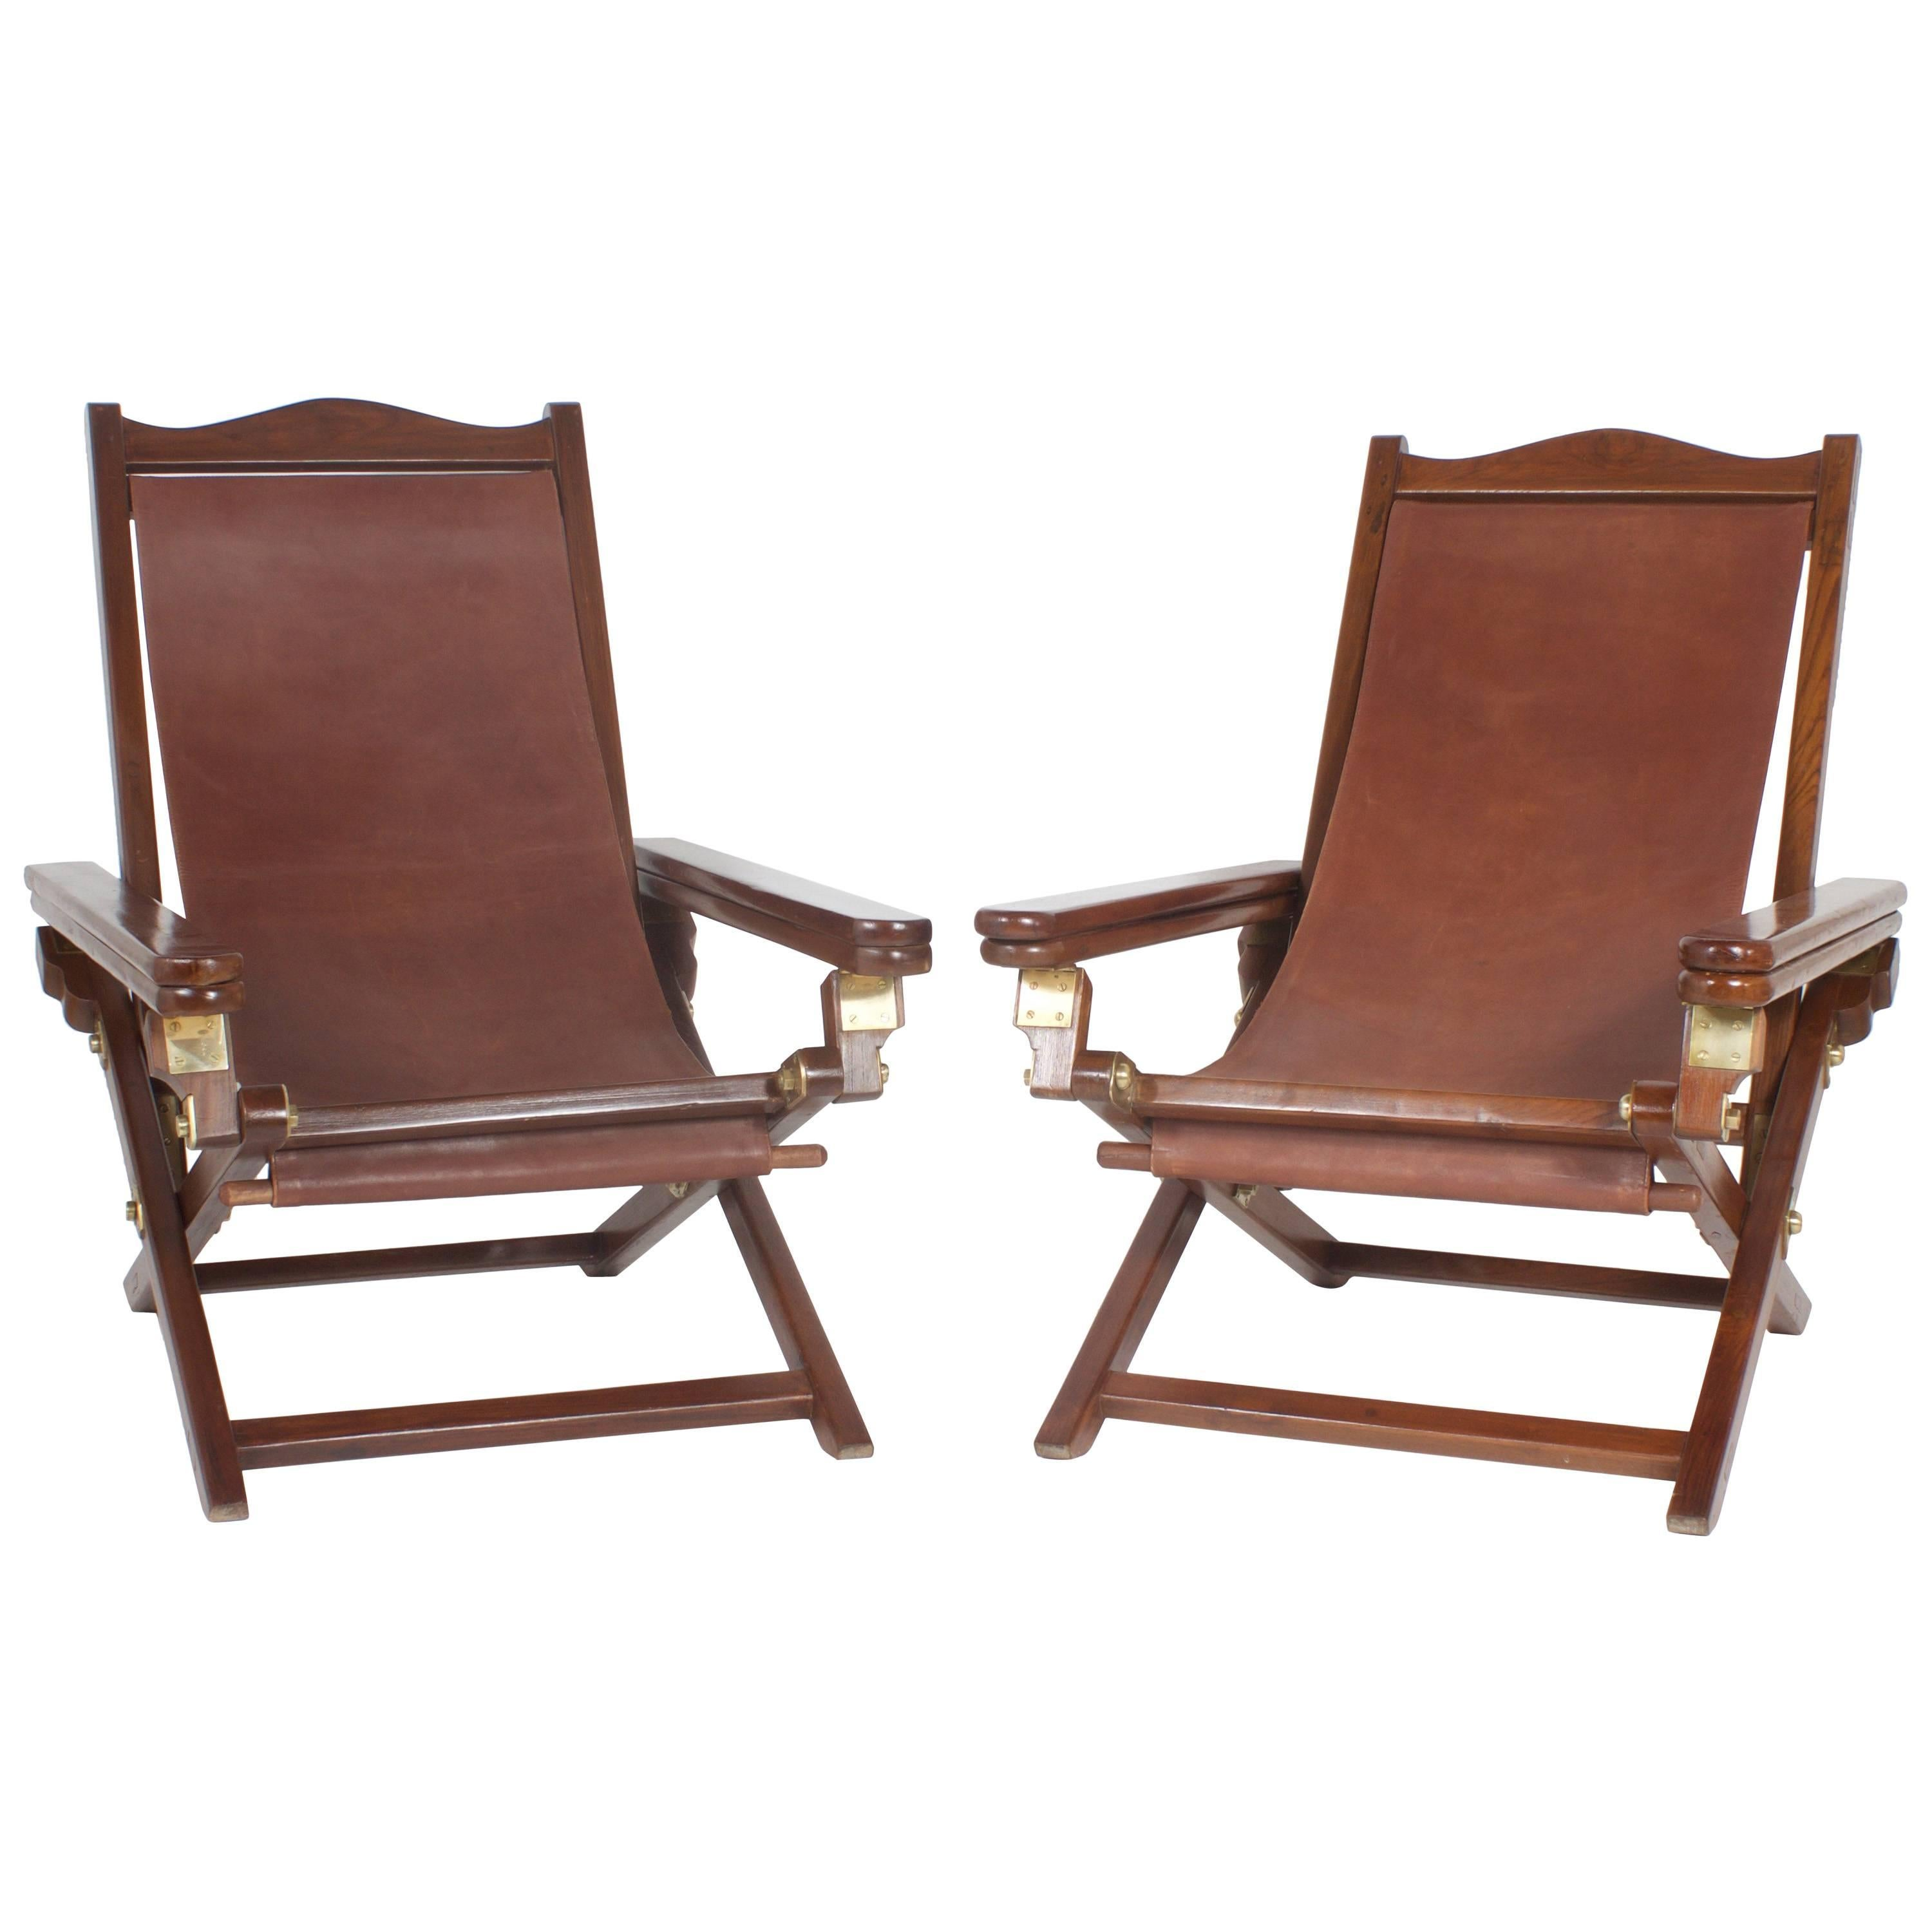 Soft Folding Chairs Exceptional Pair Of Campaign Style Folding Chairs